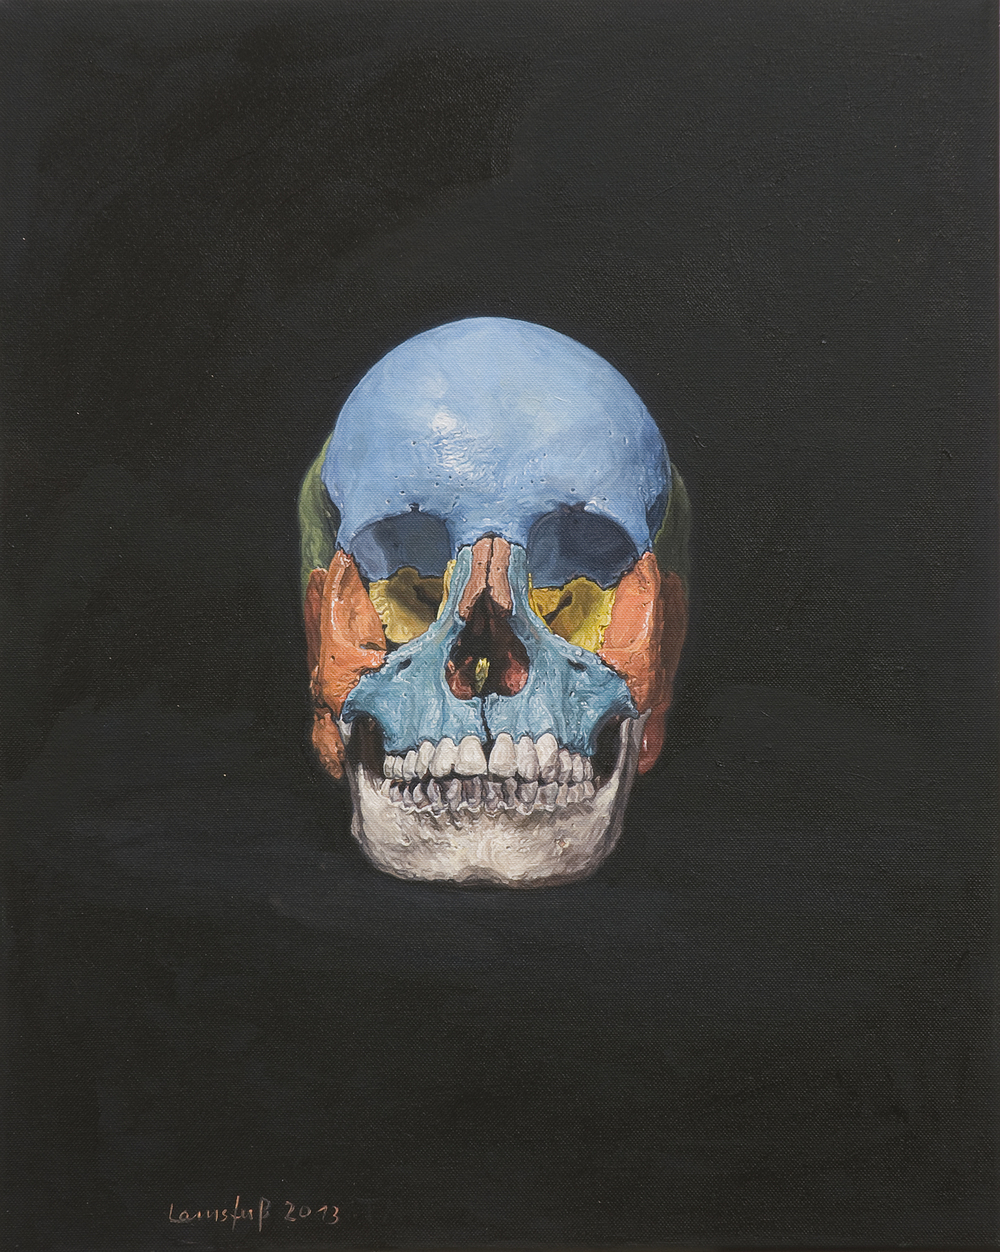 Ulrich Lamsfuss   Heike Ollertz/Ulrich Lamsfuss, Made In Germany III, Skull (3B Scientific) No. 2  , 2013   oil on canvas   19.69 x 15.75 inches   50 x 40 cm